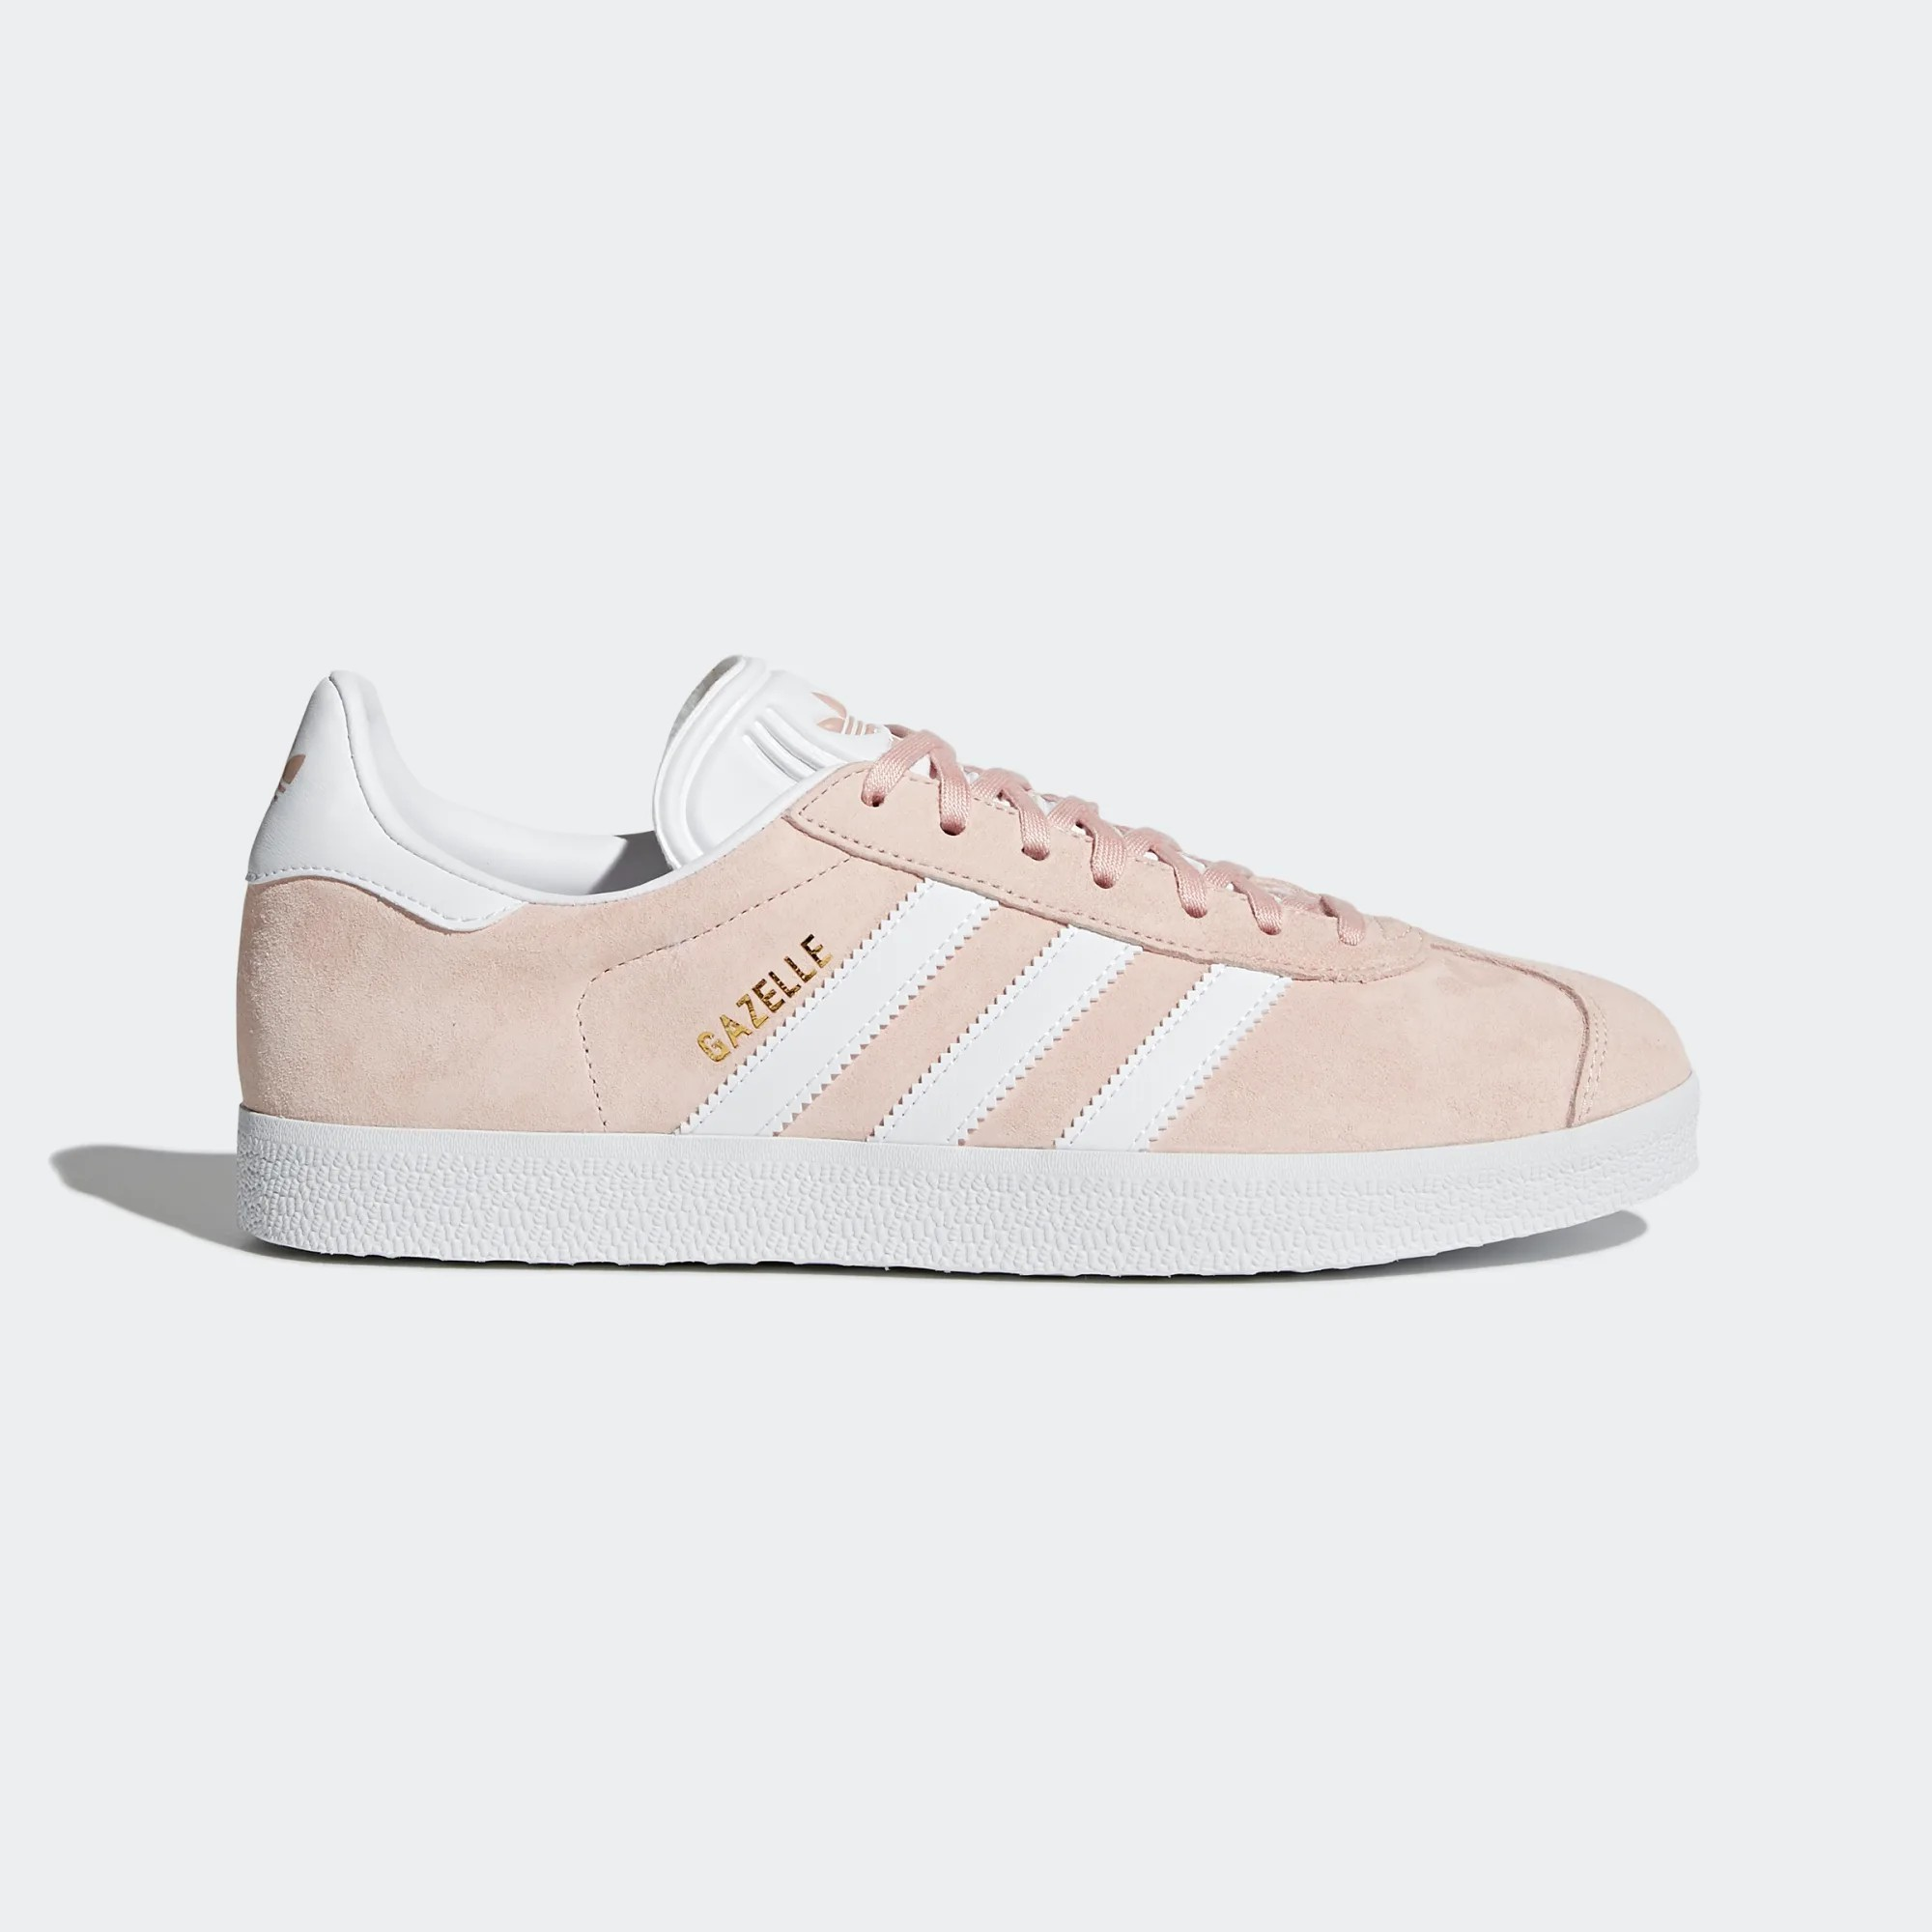 adidas Originals Gazelle Pink Sneakers BB5472